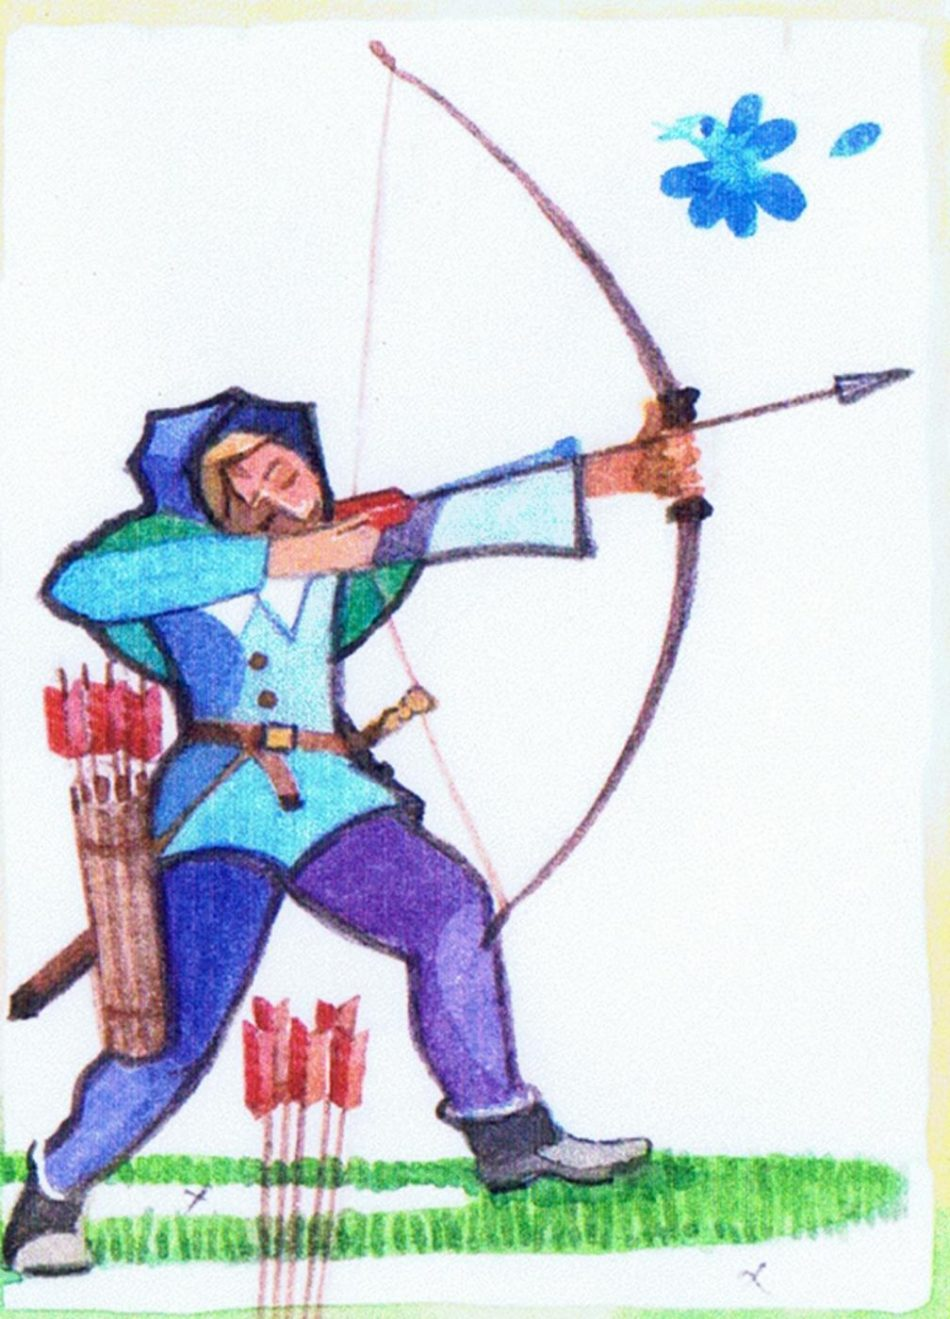 Archery practised on the butts